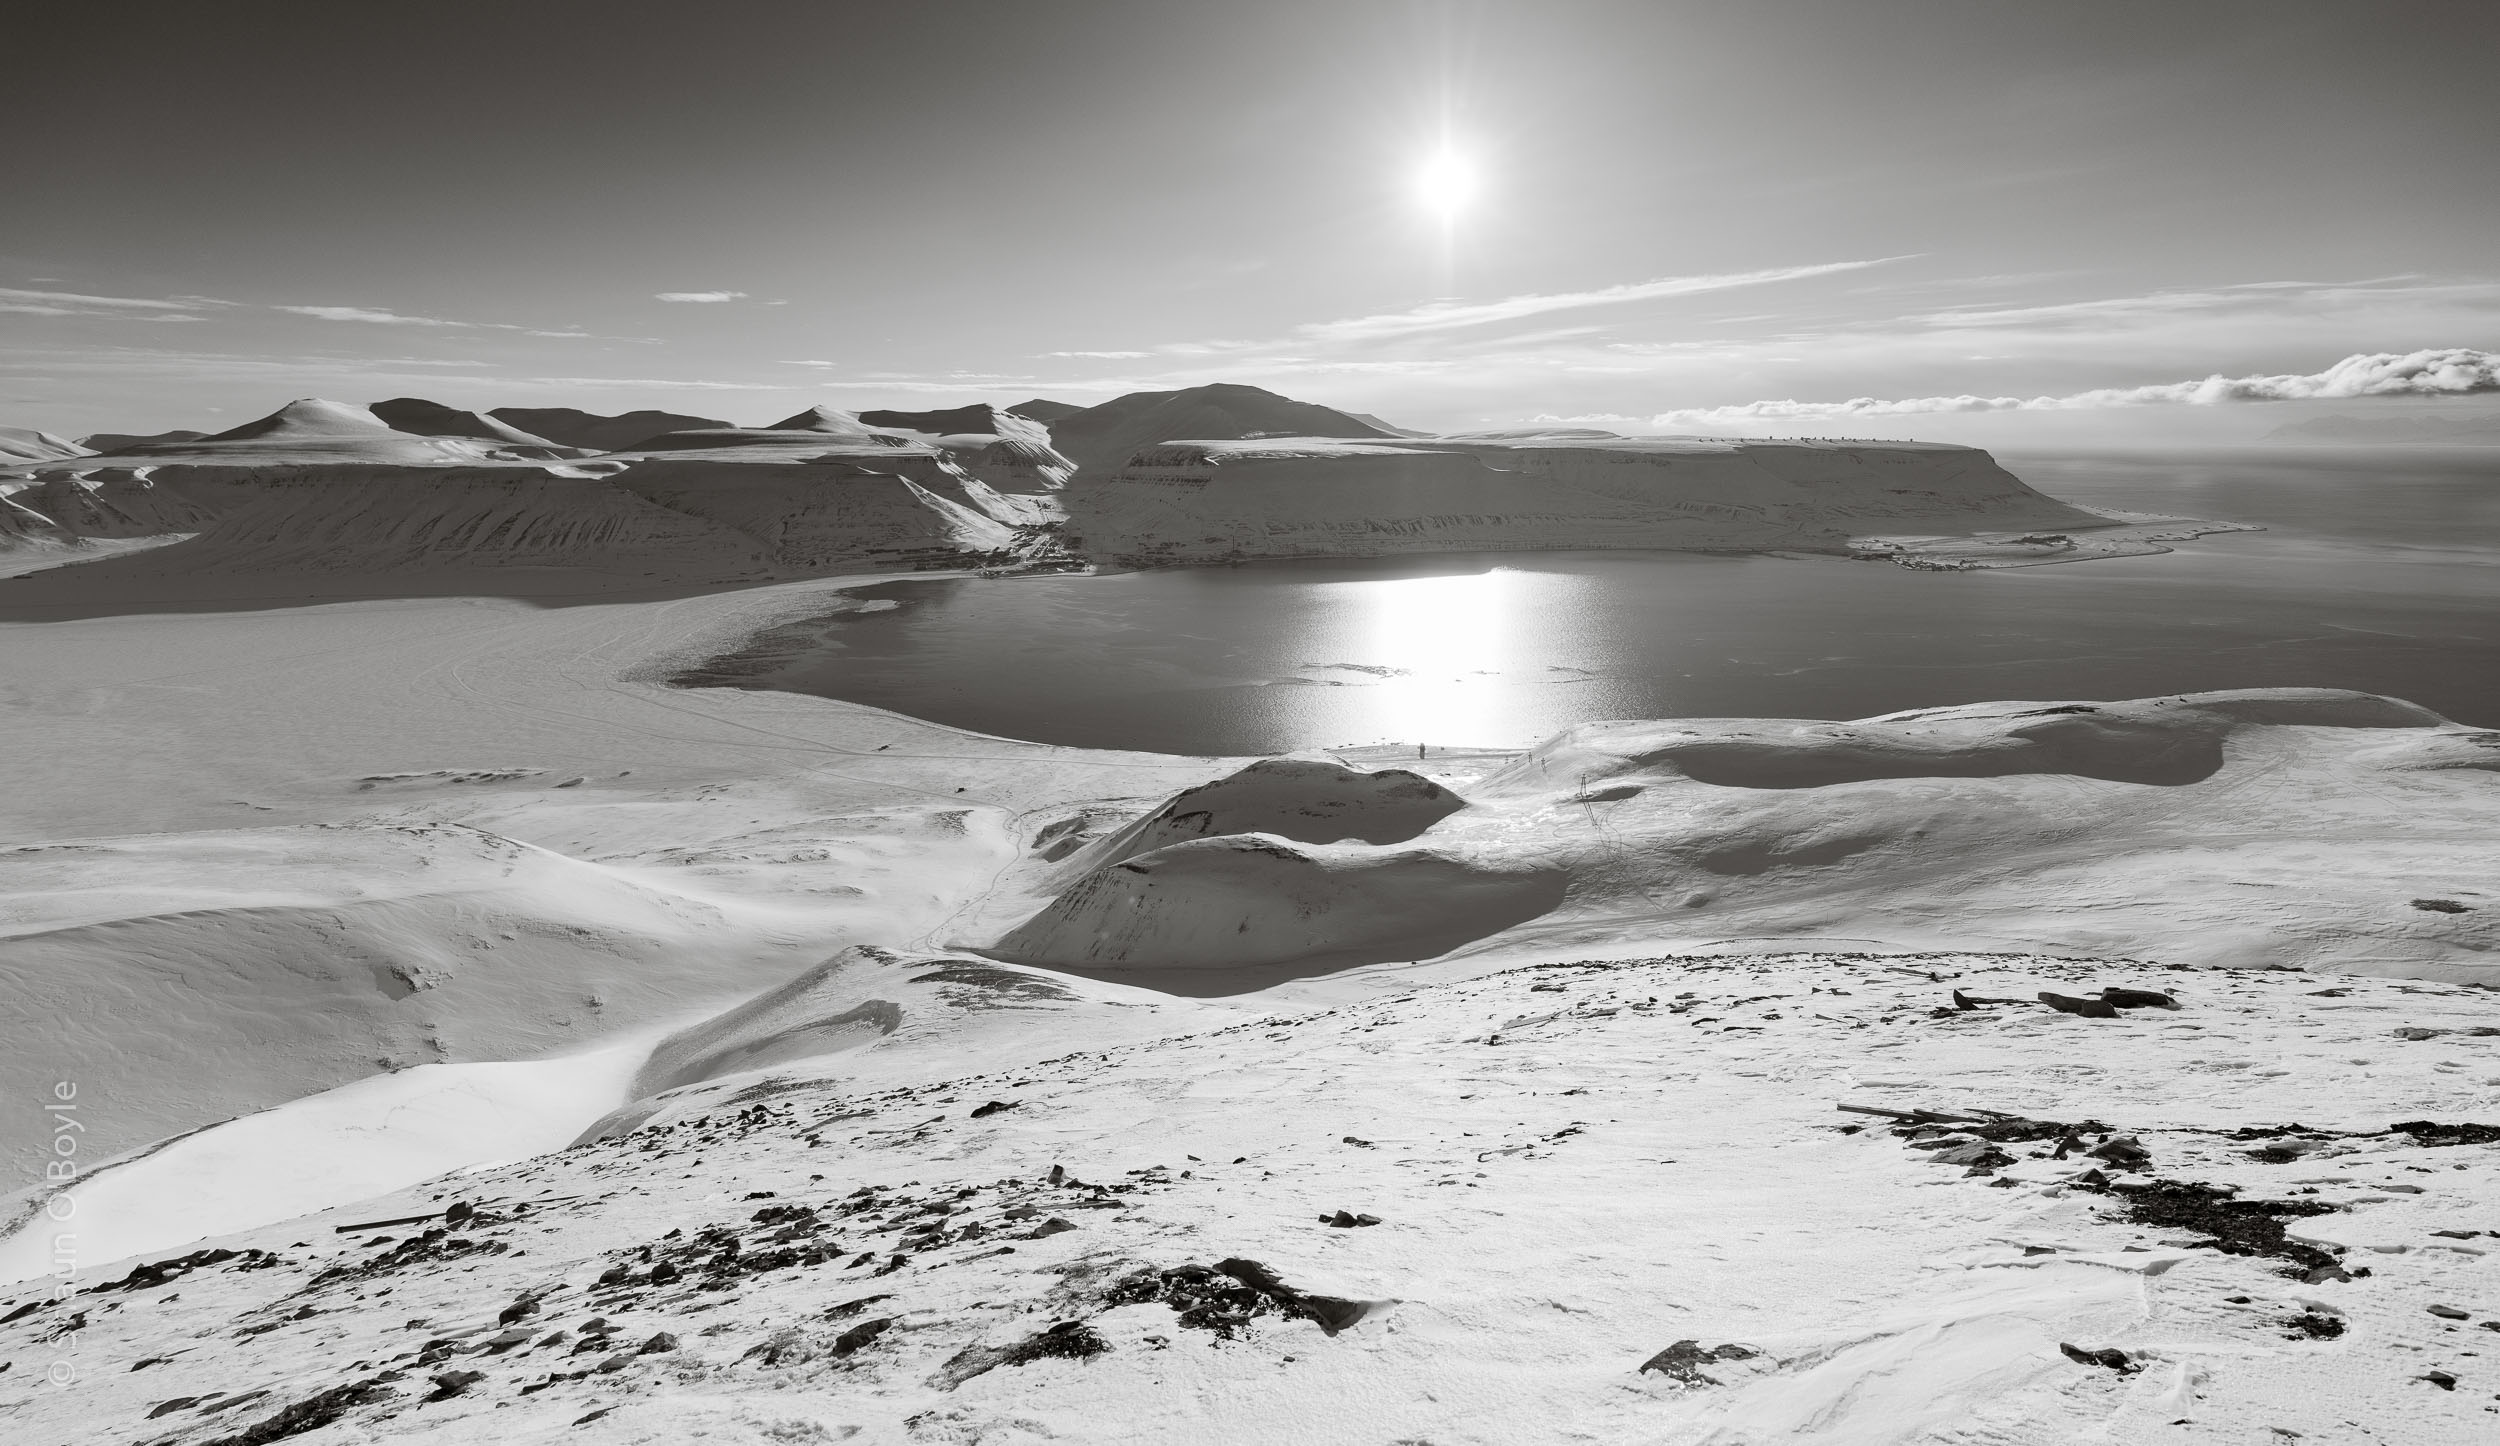 Advent Fjord and Longyearbyen